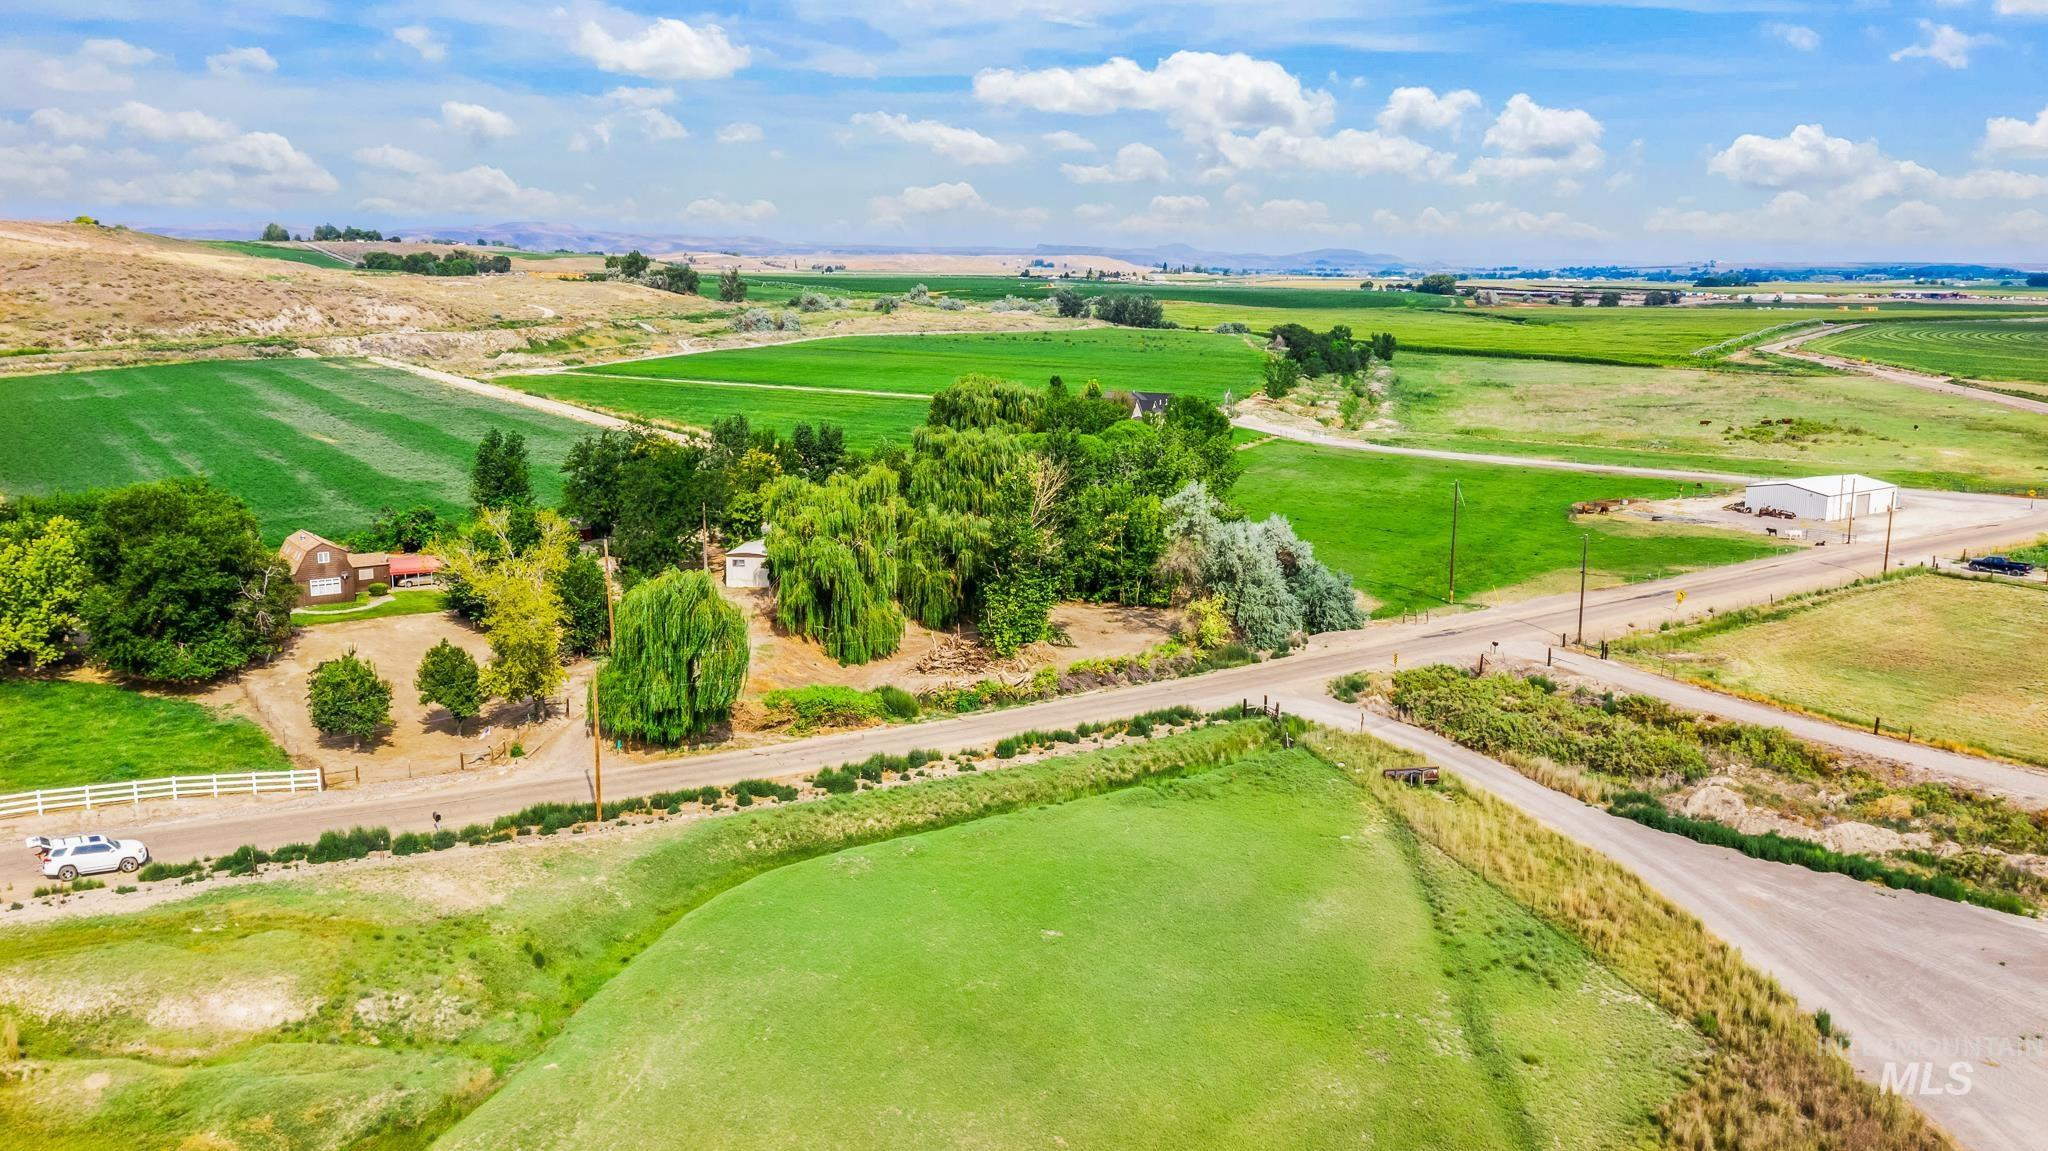 A perfect slice of country property, this ranchette on 2.74 acres is ideal for hobby farm, gardening, & horses. Beautiful setting along mature willow trees & foothills in the heart of Idaho's wine country. Property boasts irrigation rights, & no HOA or CCRs offering endless options. This light & bright 1220 square foot home offers a main level master, 2 living spaces, tall ceilings, cozy fireplace & hardwoods. Many outbuildings, oversized carport & a 800 square foot mobile home that could be re-connected to power & water for 2nd living quarters. Just minutes to the Snake River & boat ramp. - Sheila A Smith, Voice: 208-631-2248, RE/MAX Capital City, Main: 208-344-7477, http://www.SheilaSmithRealEstate.com